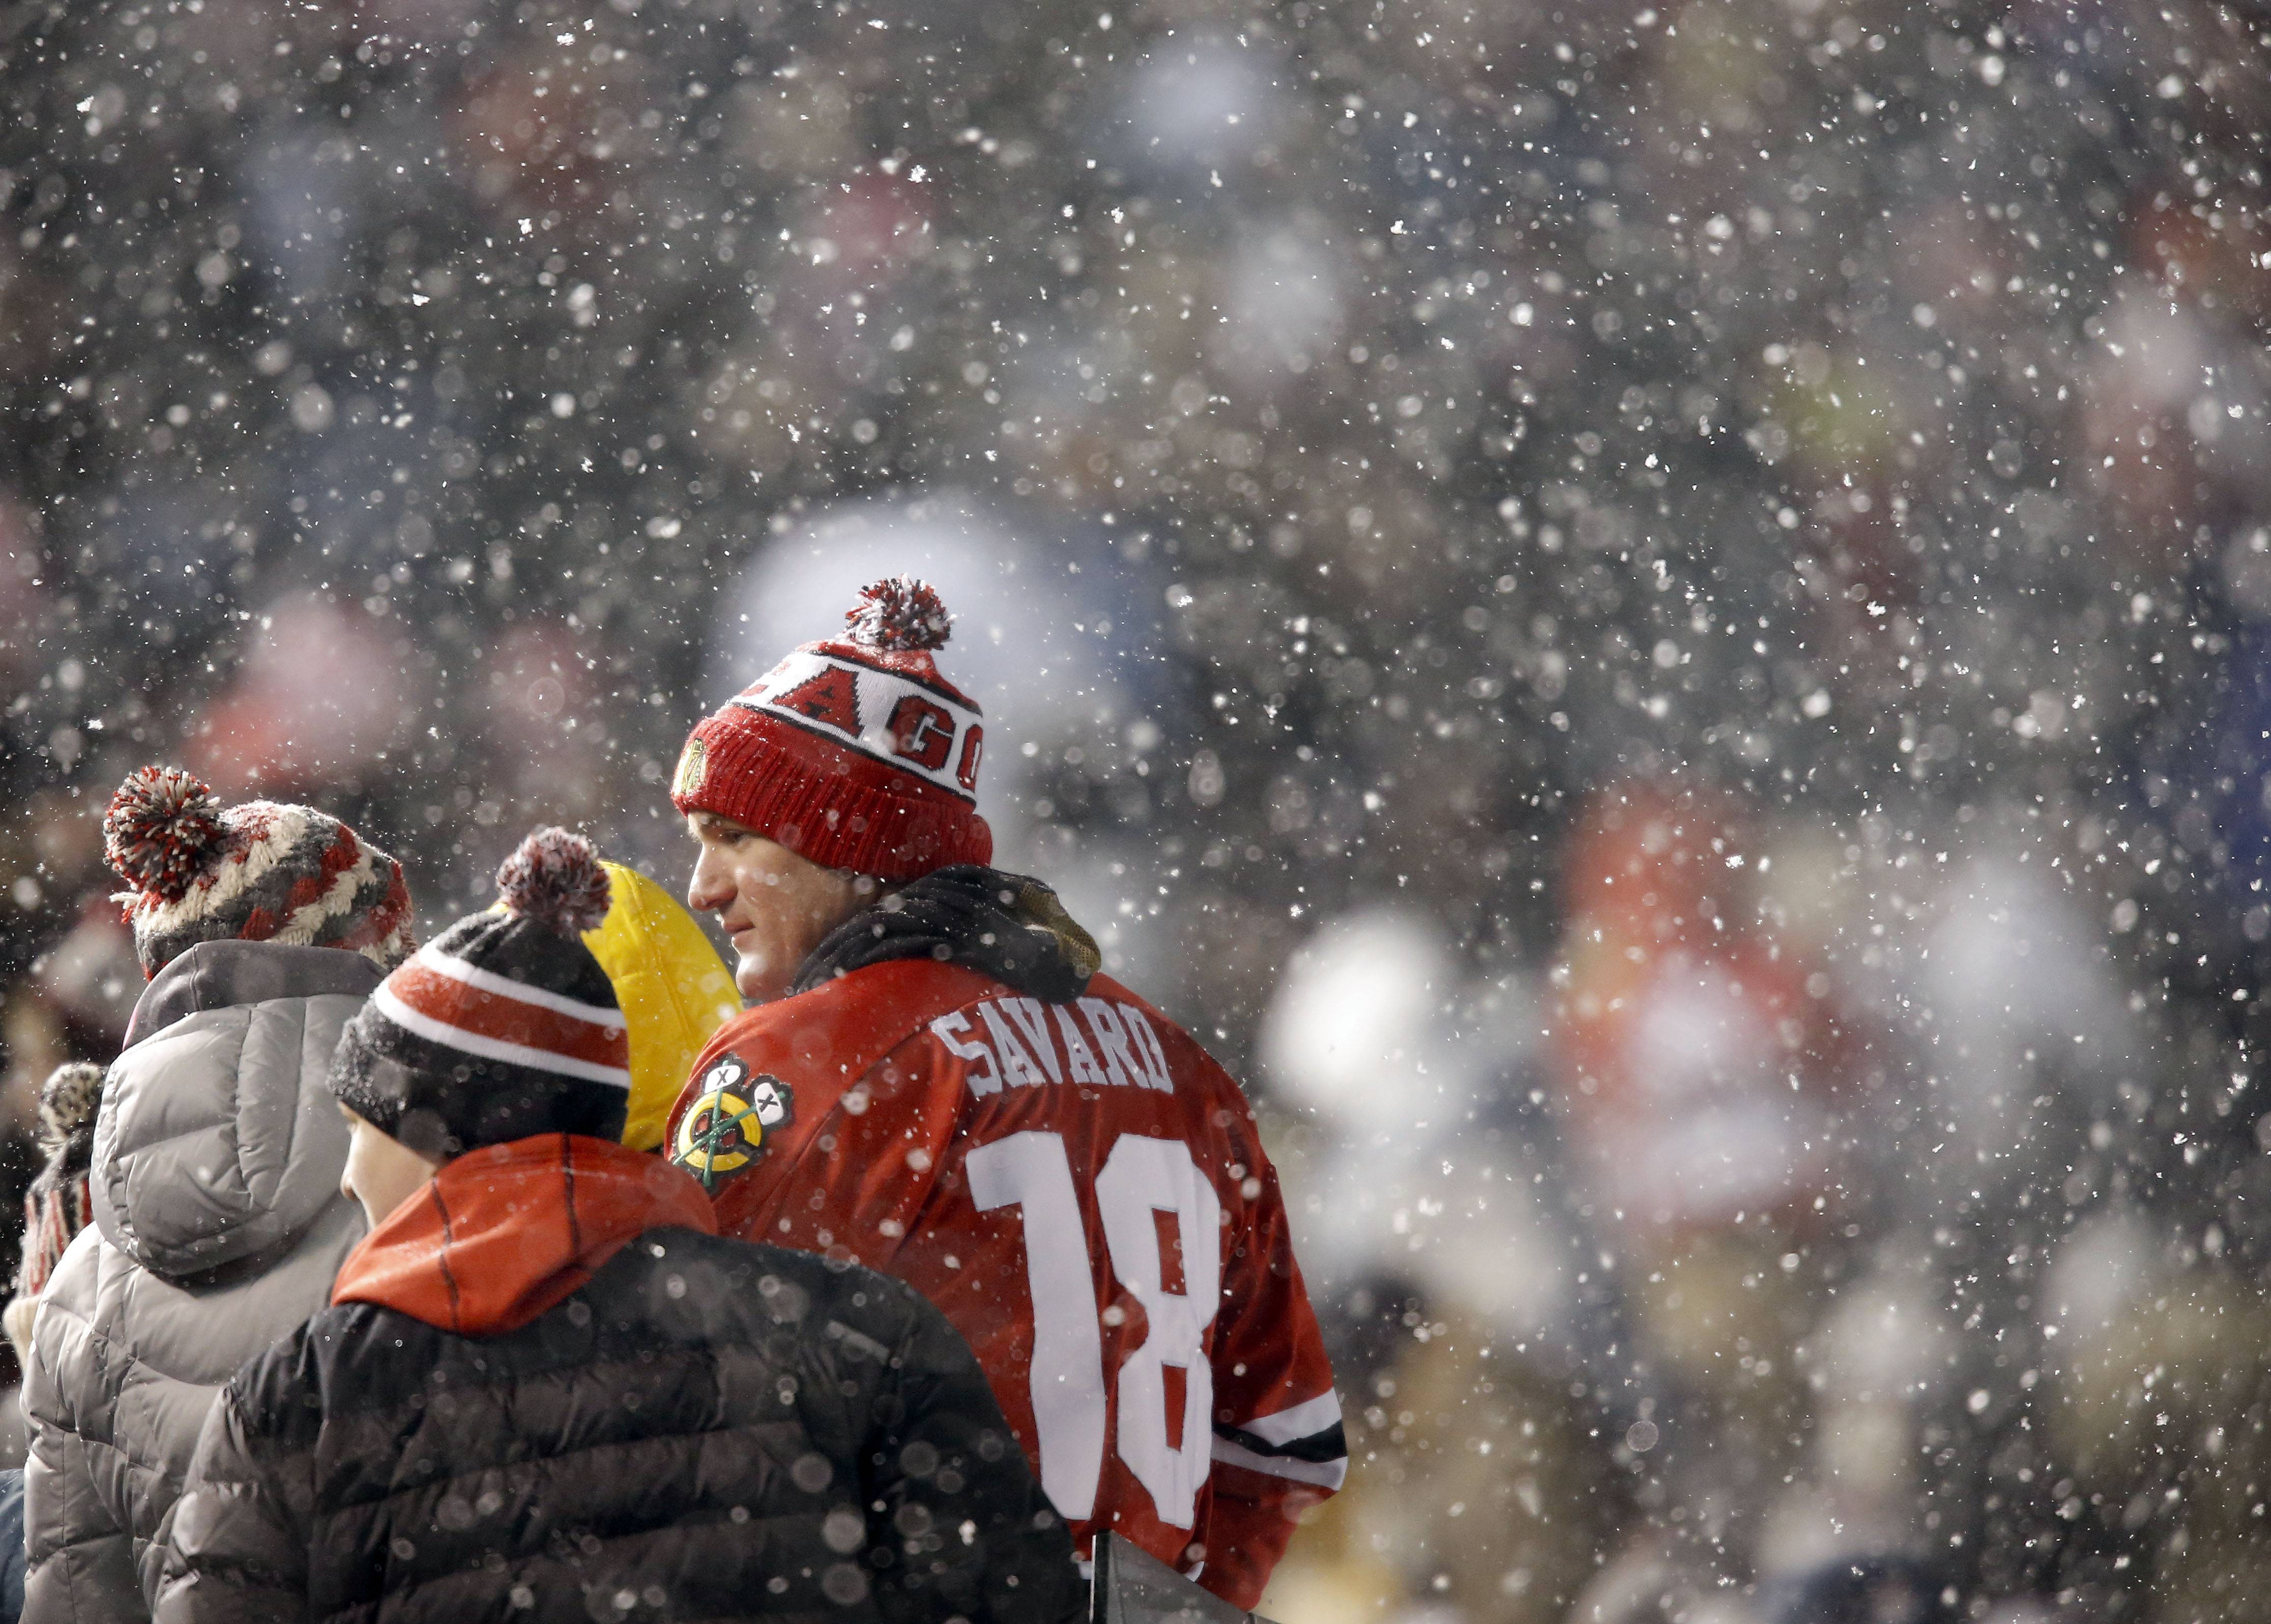 Snow covers Soldier Field during the NHL Stadium Series between the Blackhawks and the Penguins Saturday.